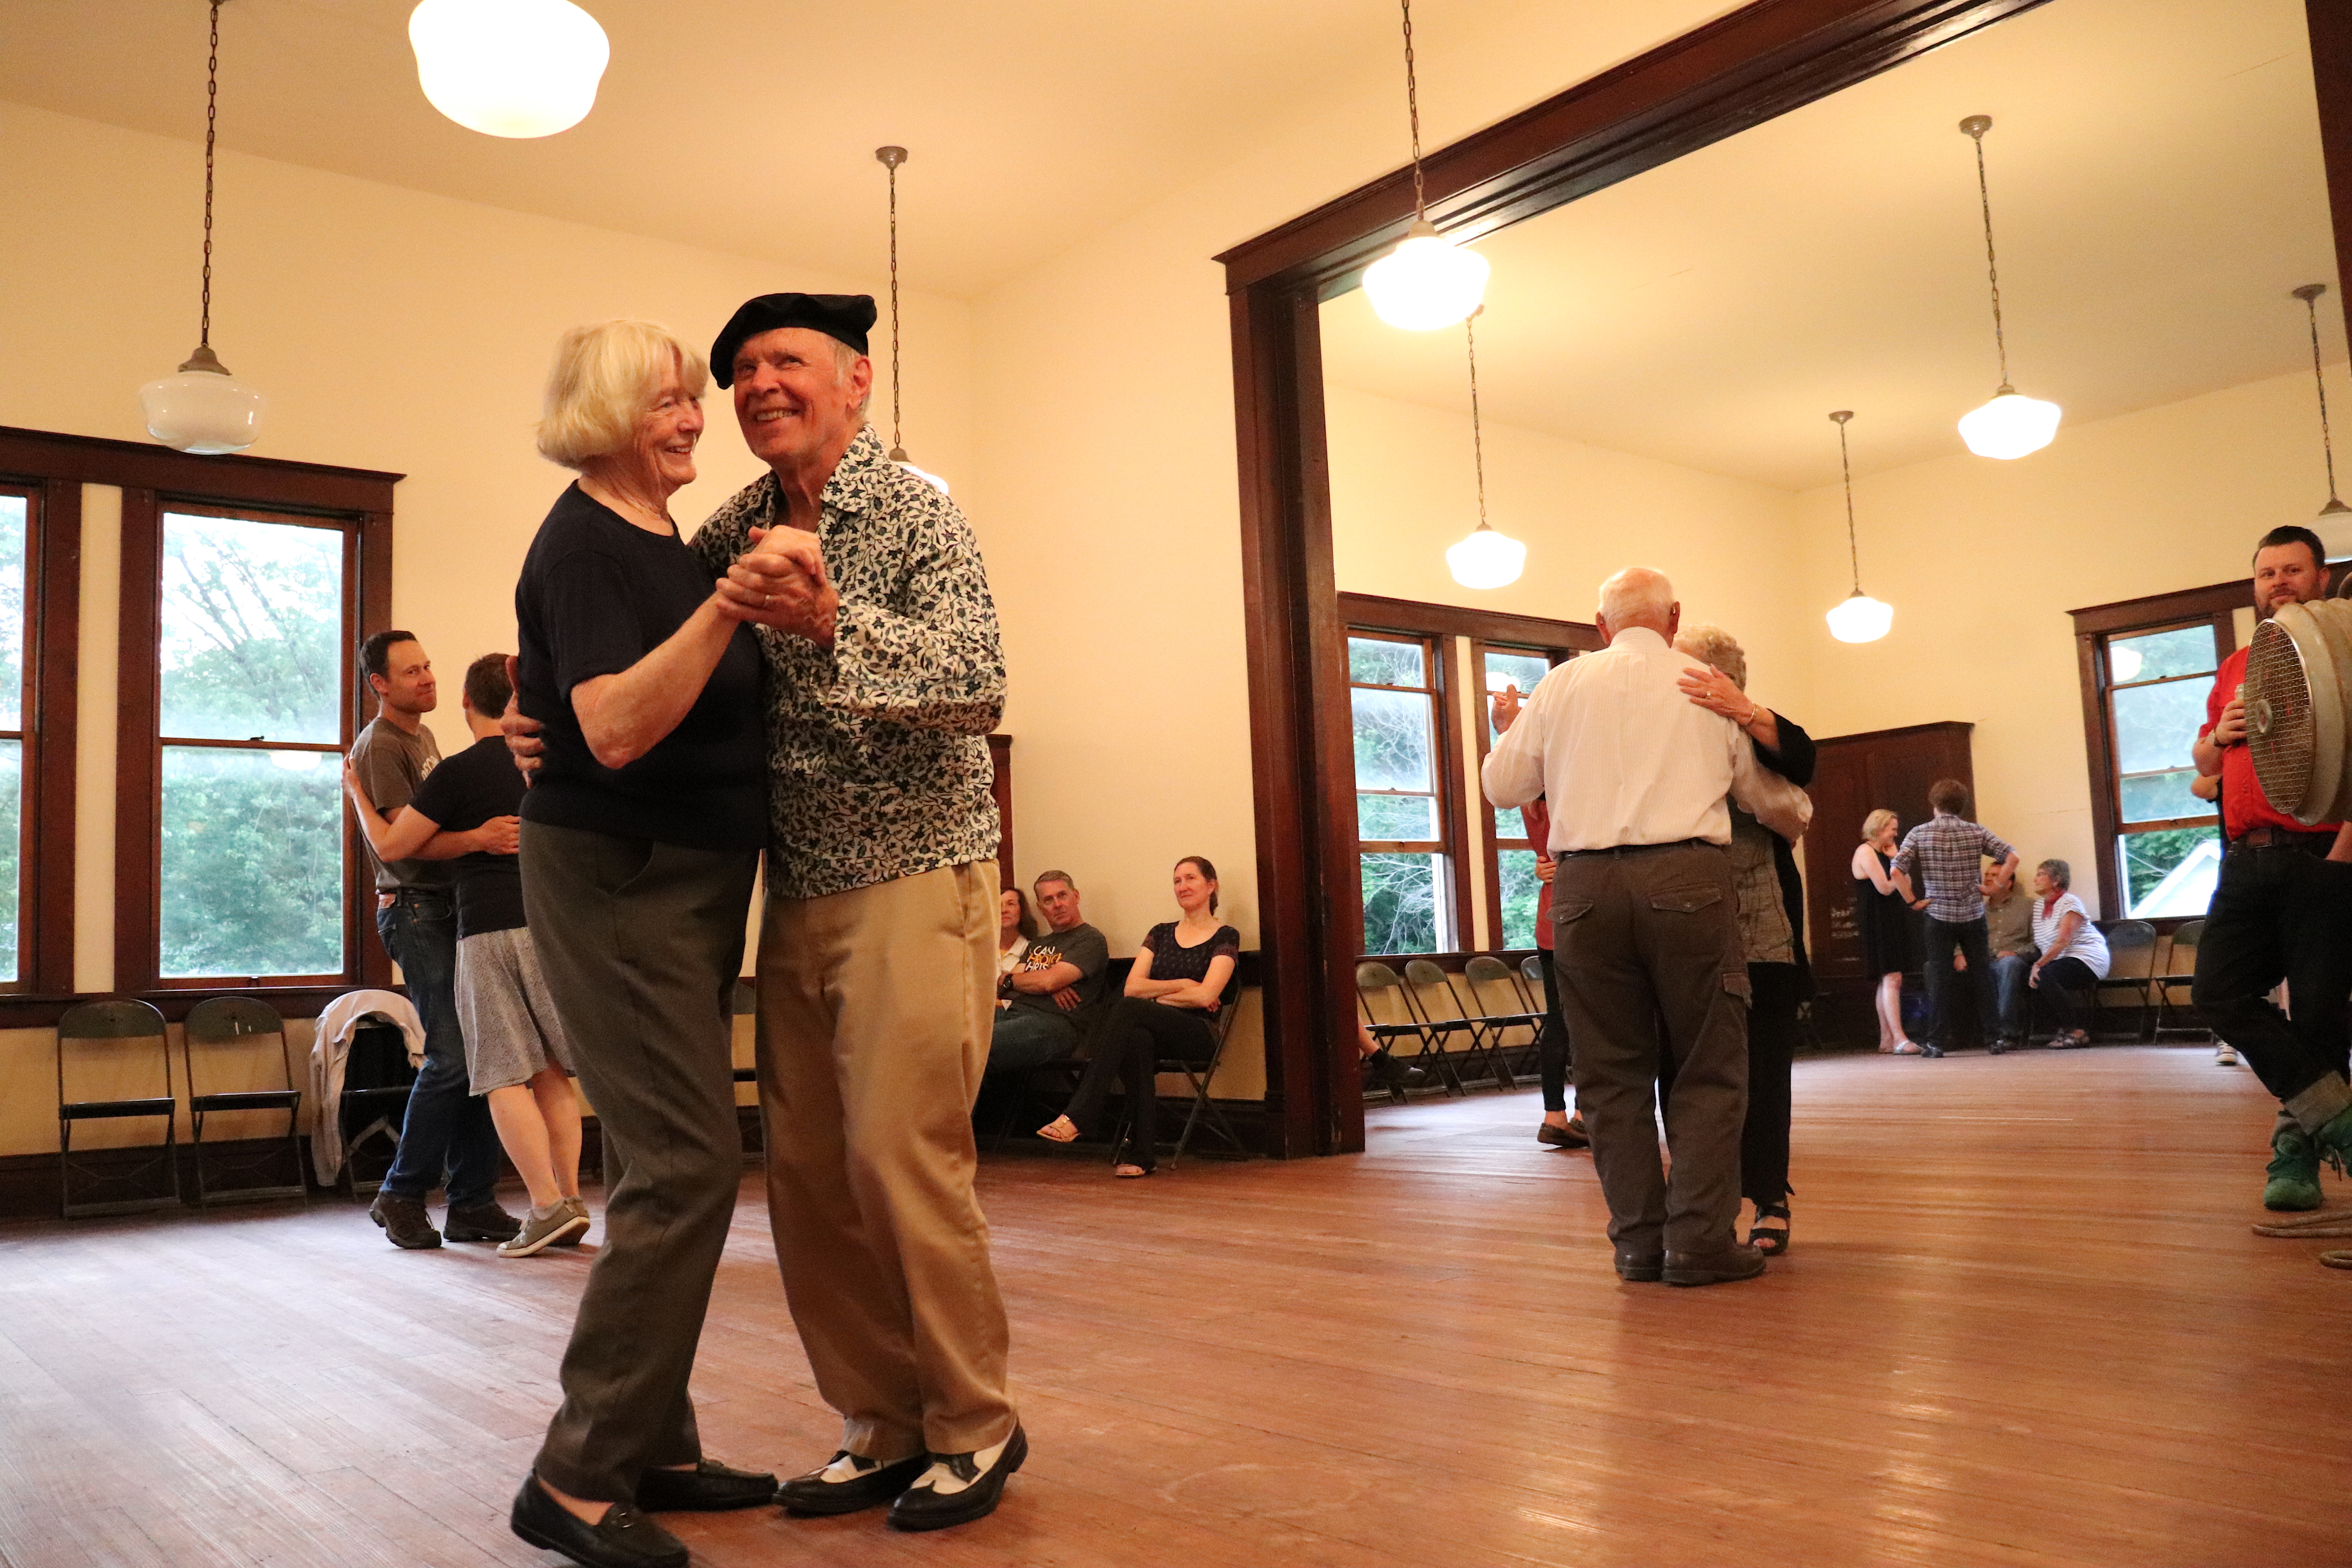 An older couple dancing to music.